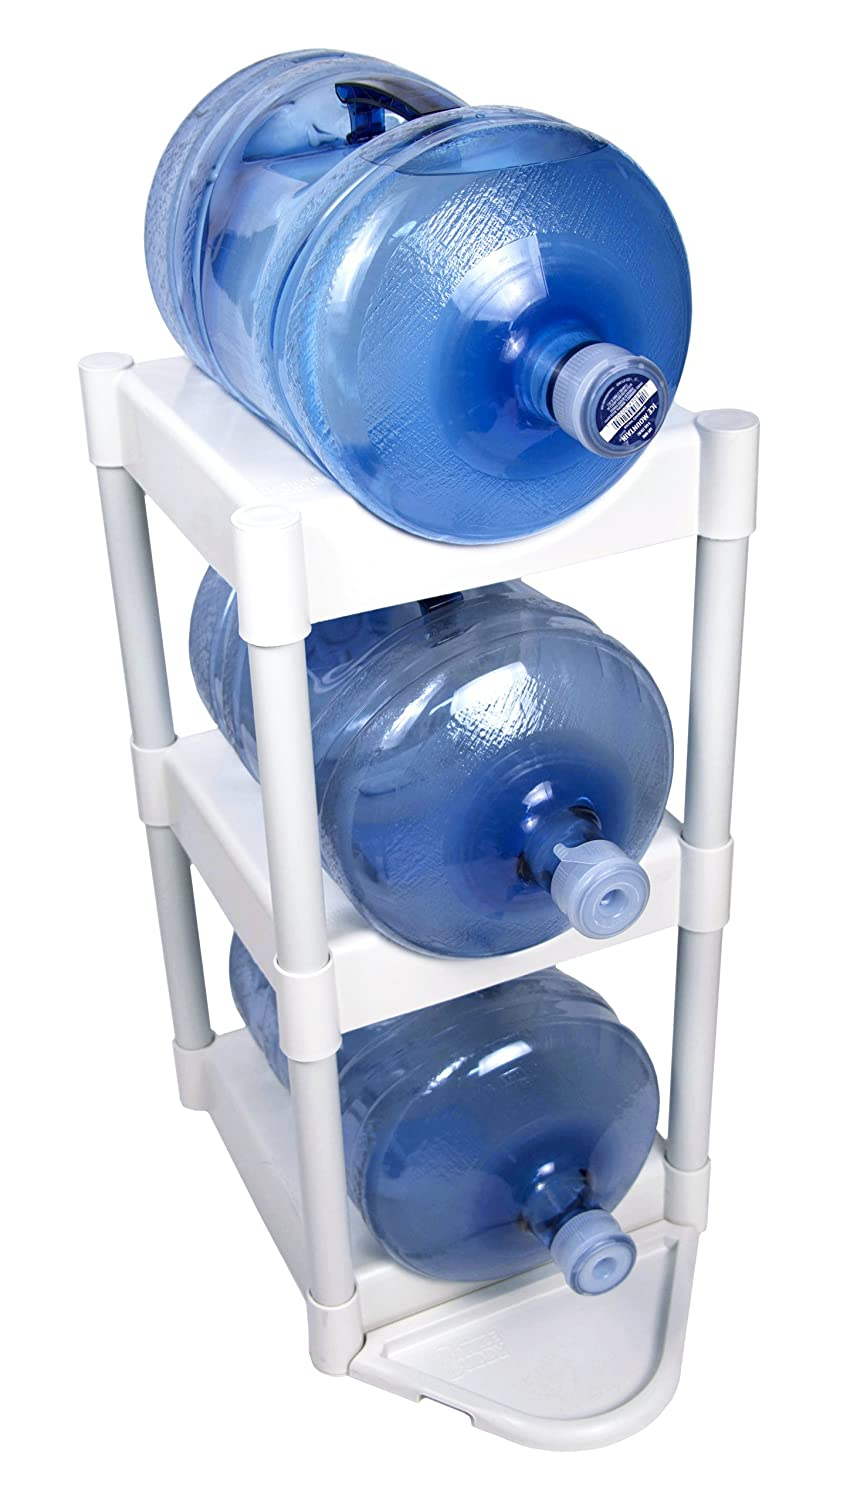 Bottle Buddy 3-Tier with Floor Protection Kit by Bottle Buddy   B001I0KGZ0